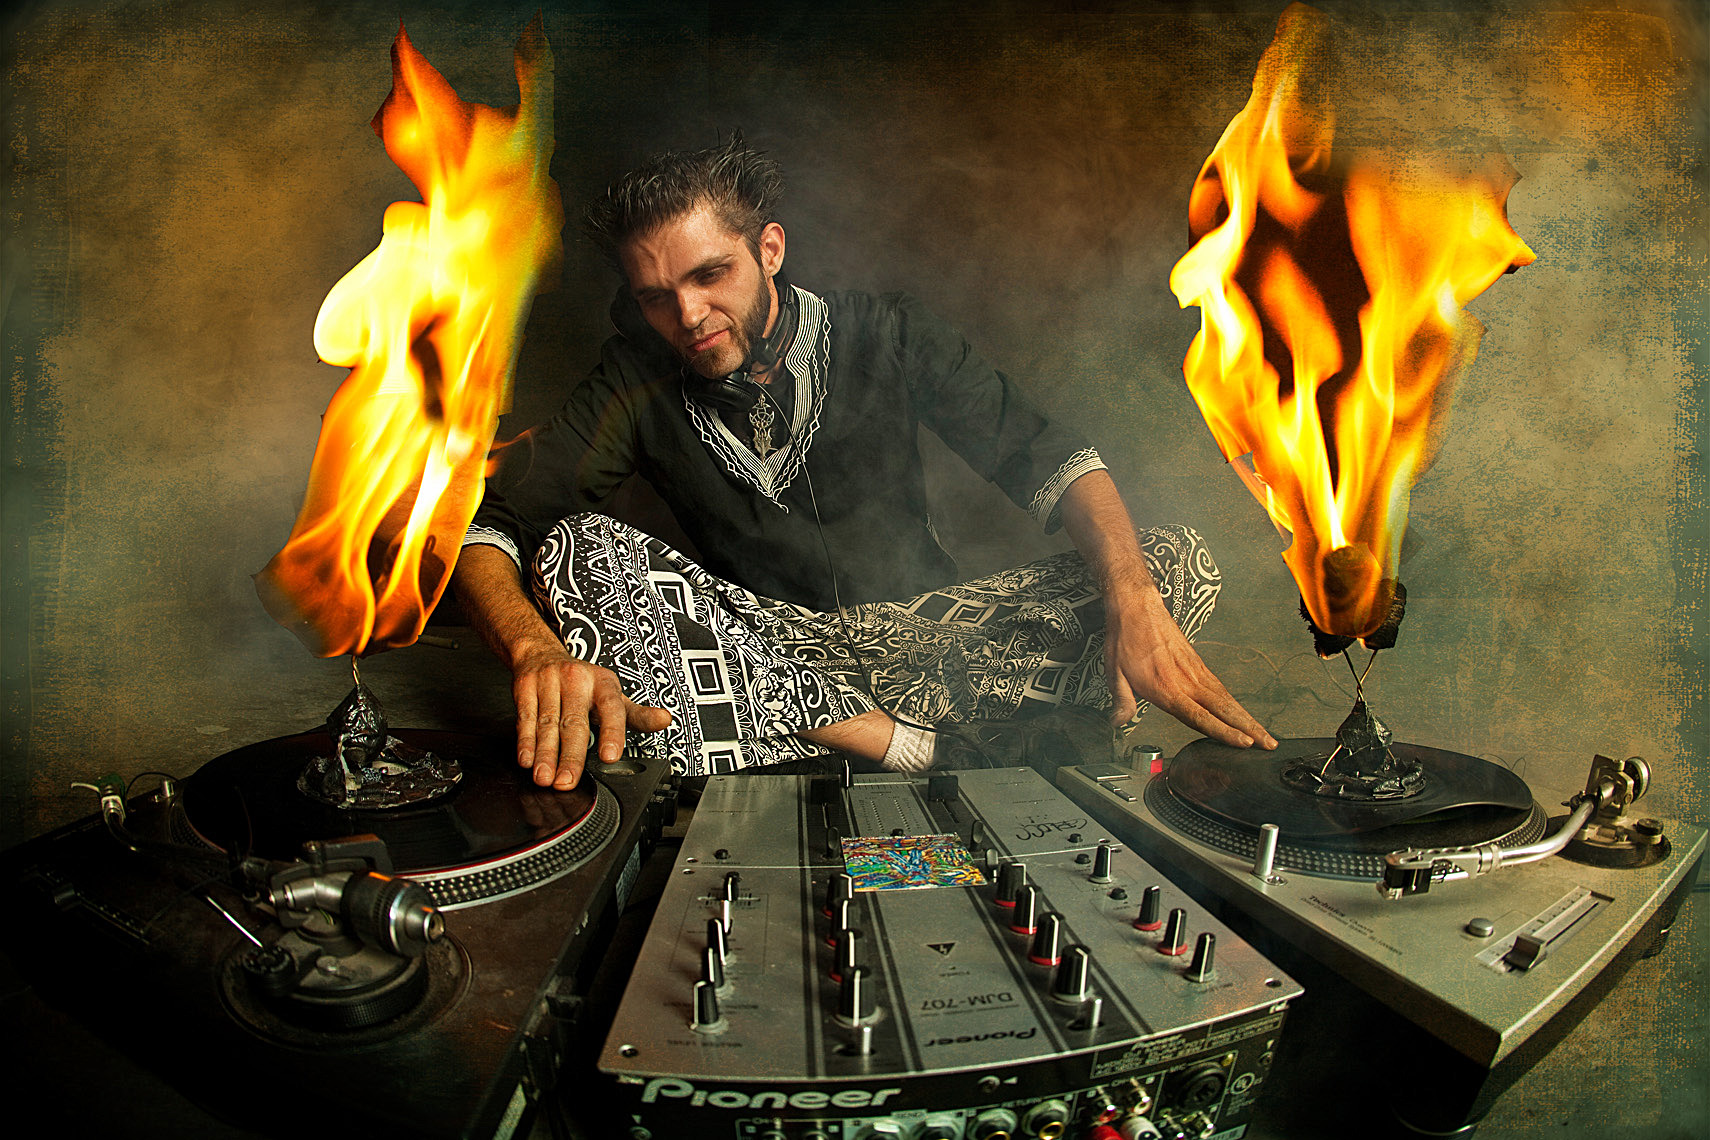 gritty textured DJ spinning fire Fire Dancers